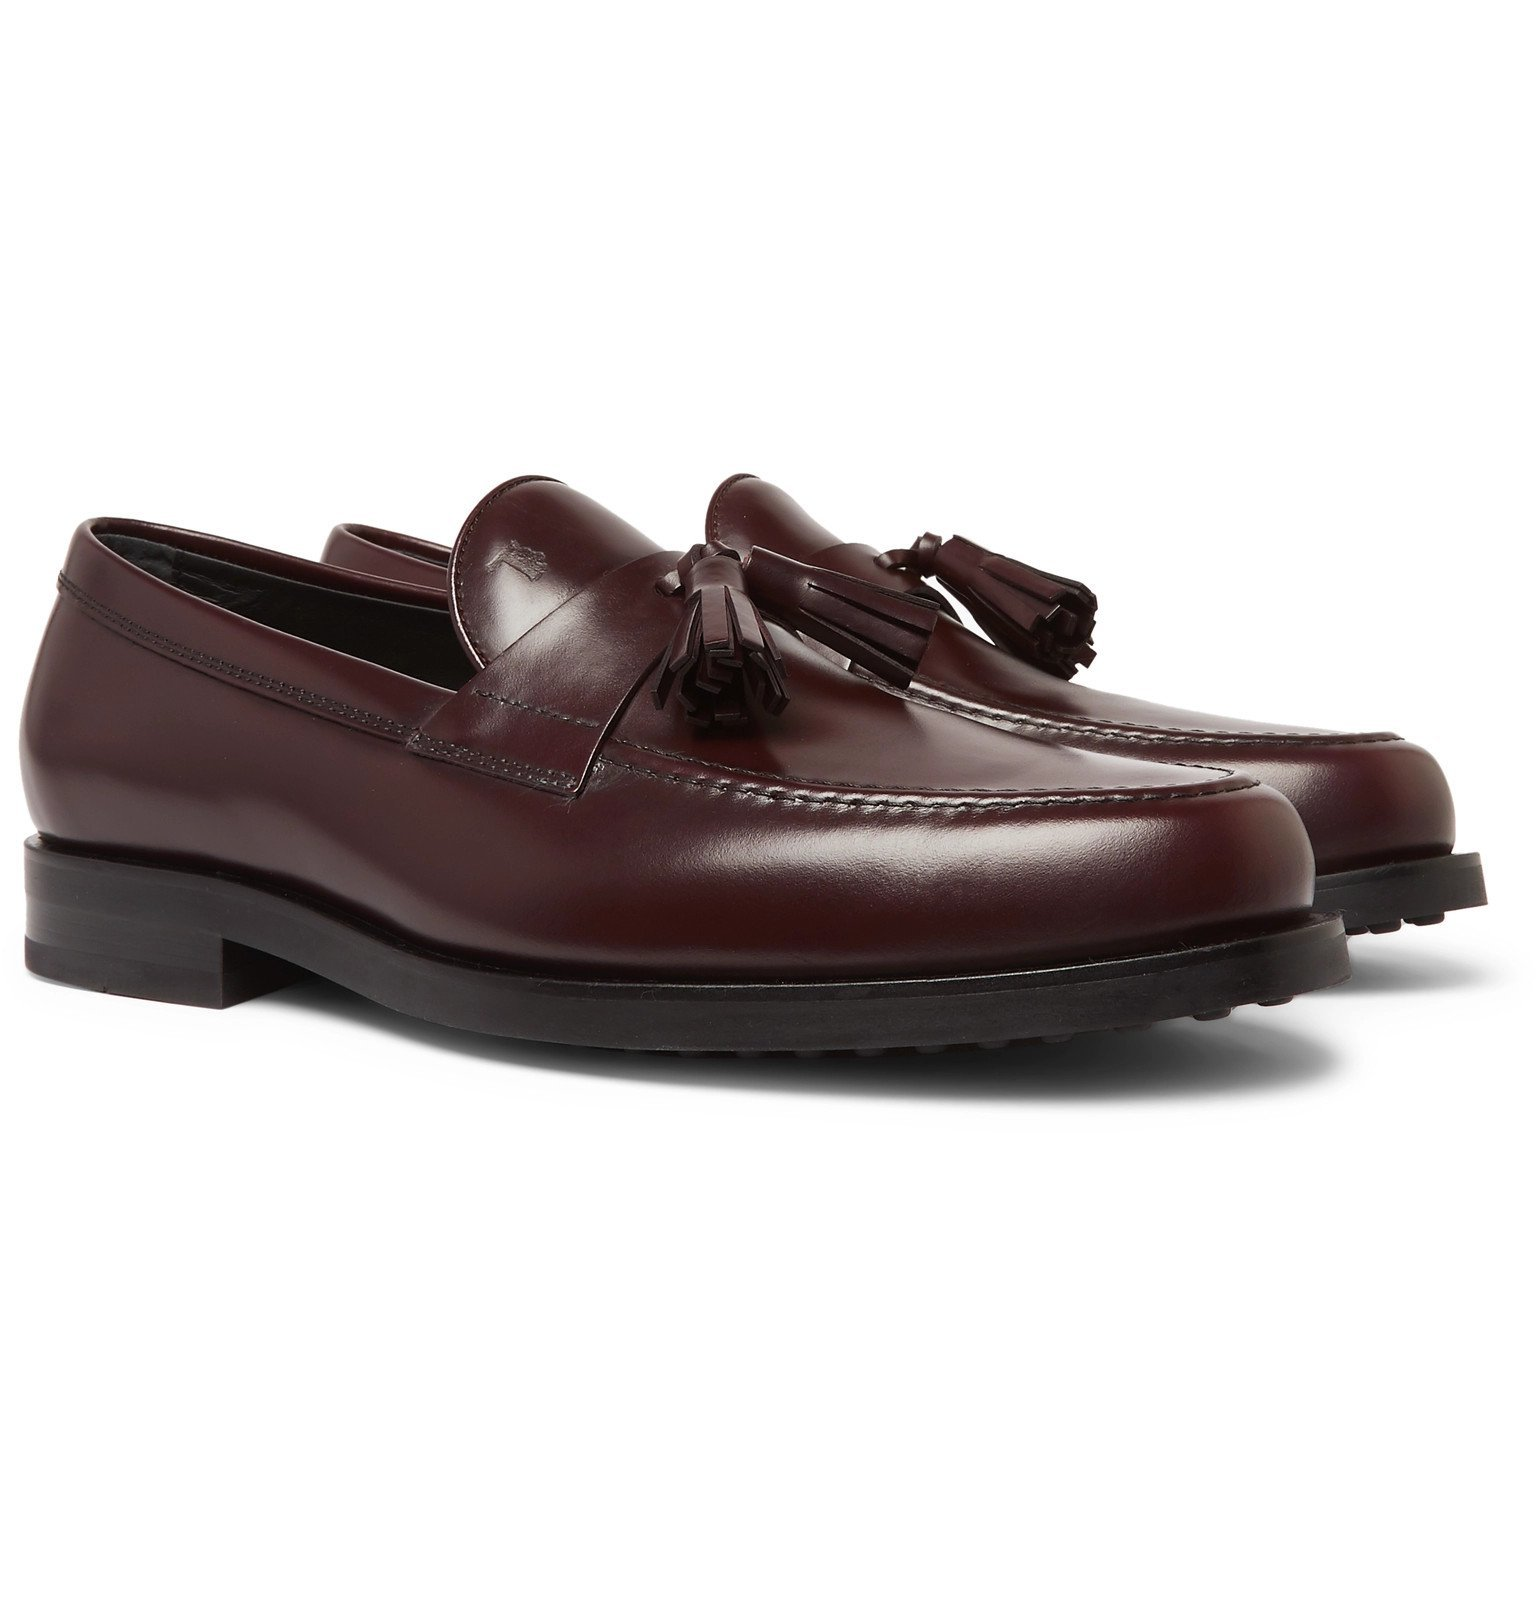 Tod's - Polished-Leather Tasselled Loafers - Burgundy